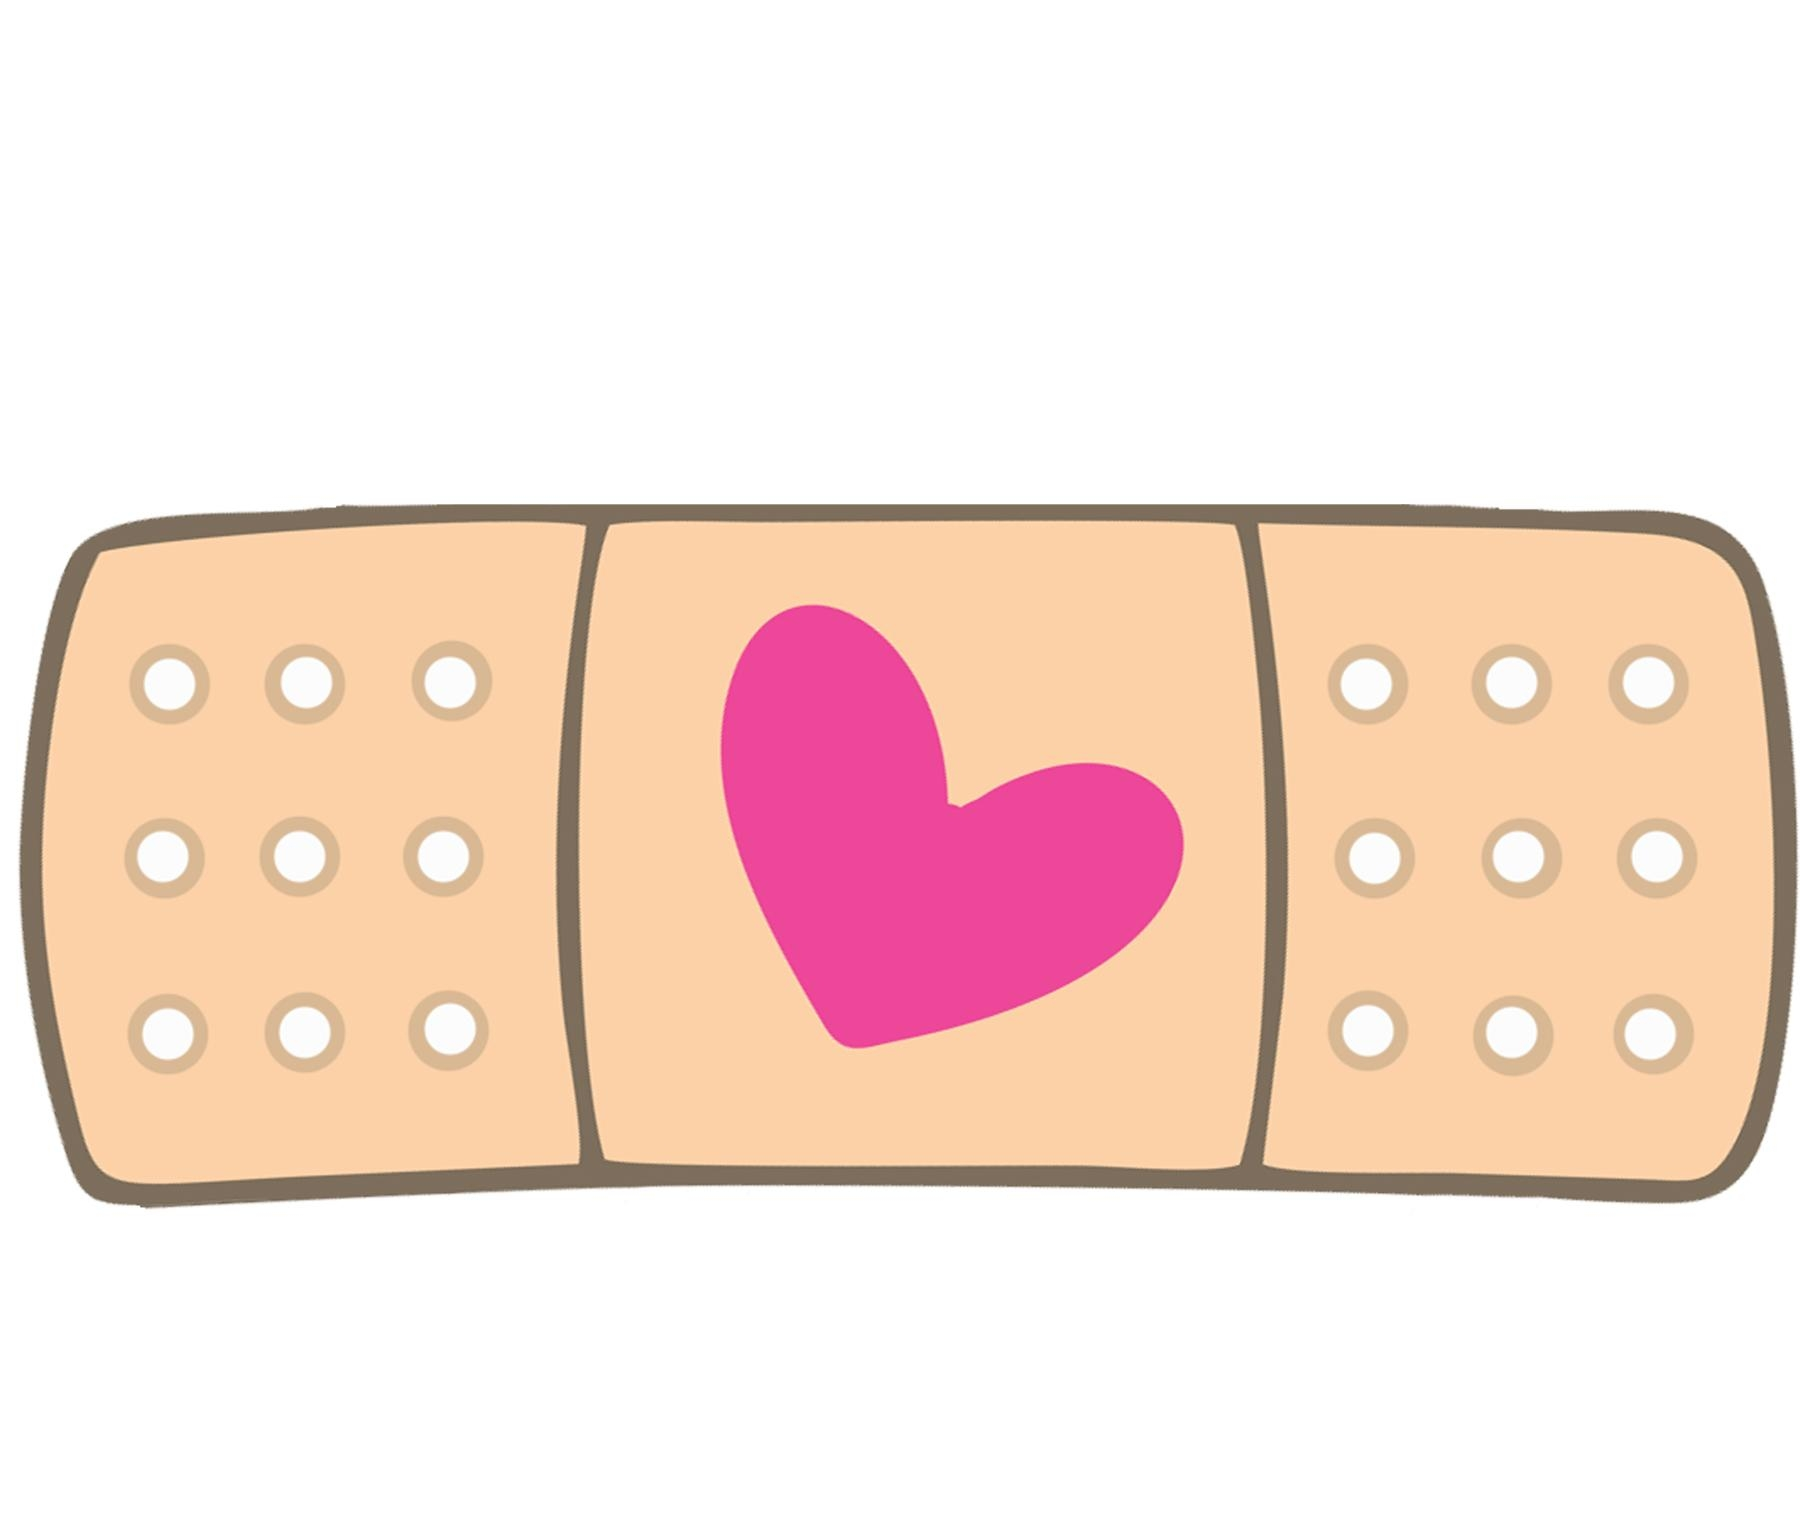 Doc mcstuffins clipart band aid. New gallery digital collection